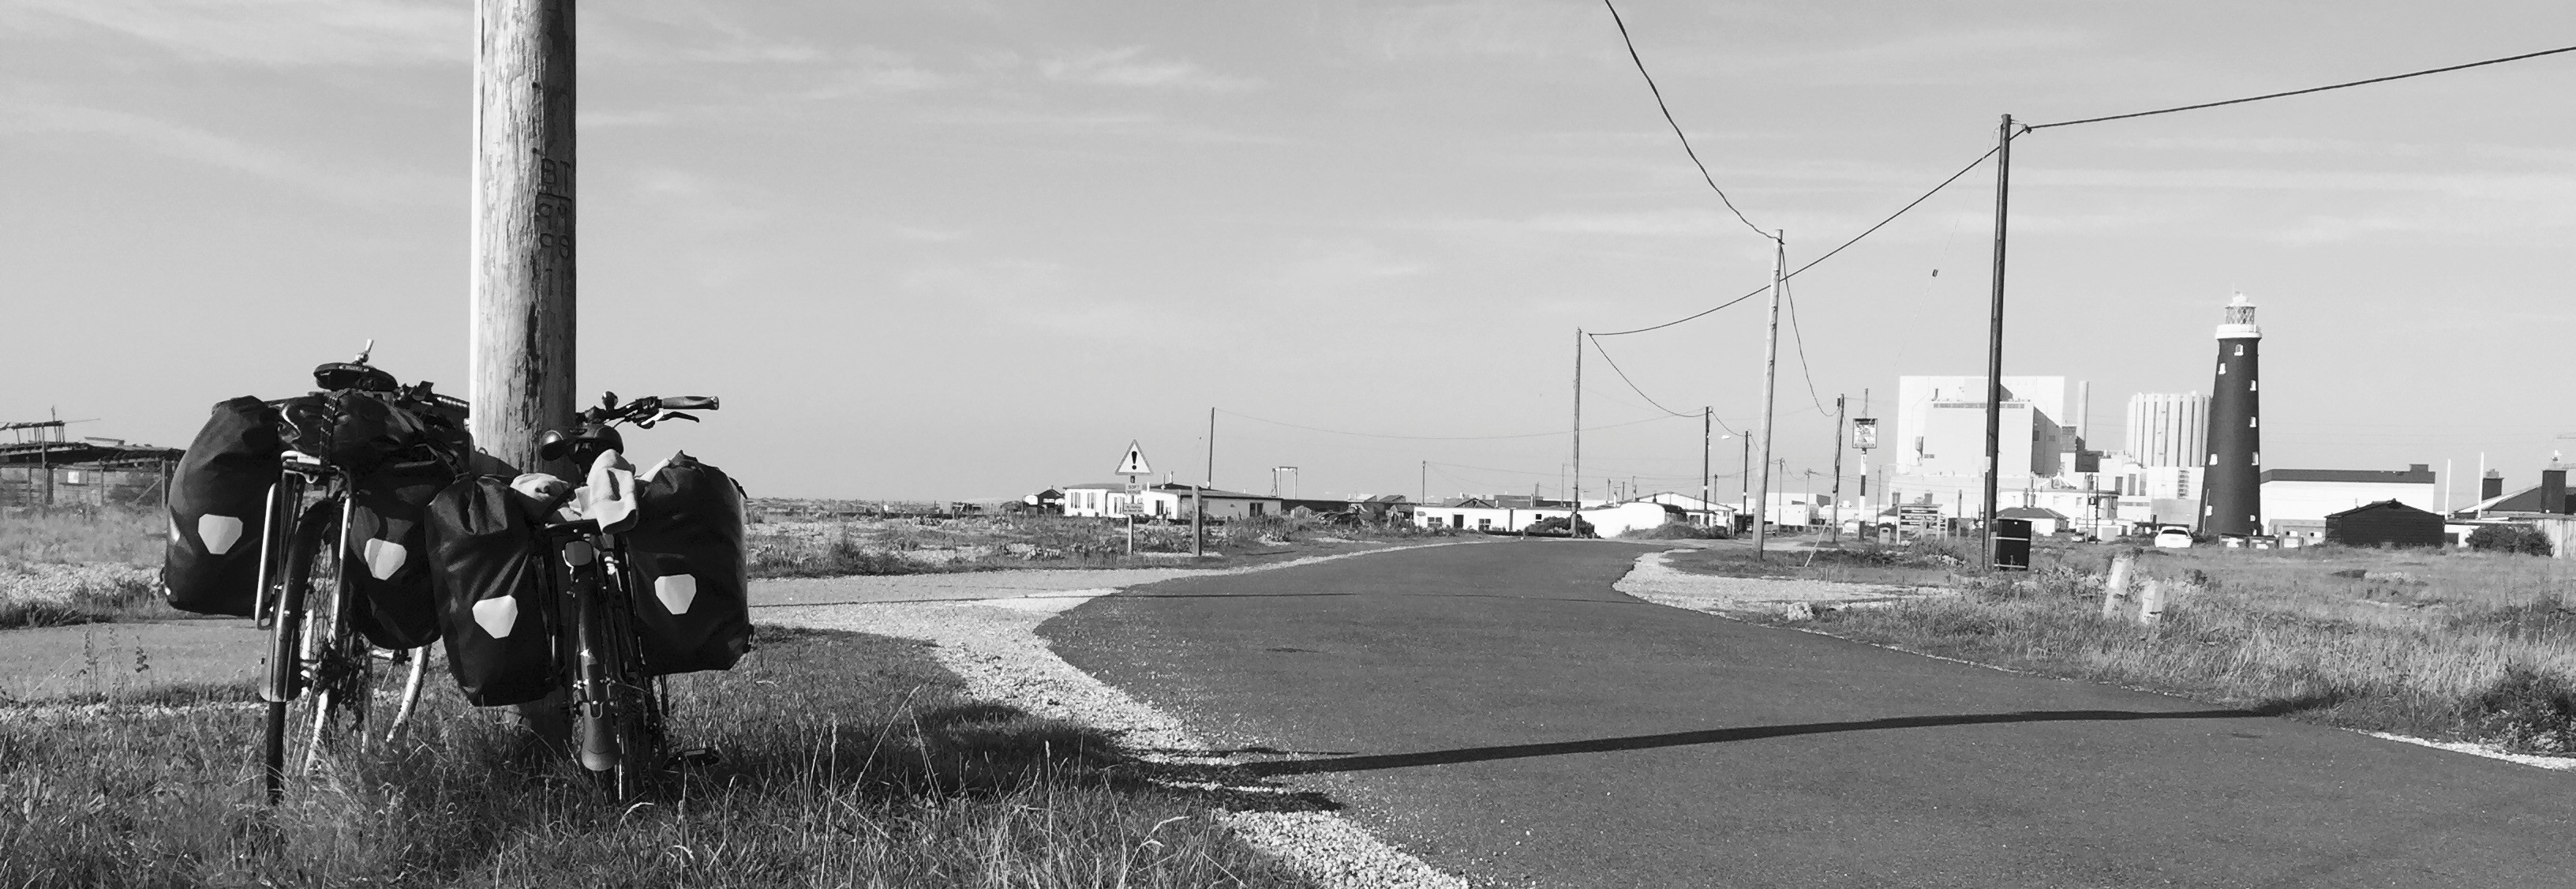 national cycle route 2 leading to wild camping in Dungeness, Kent